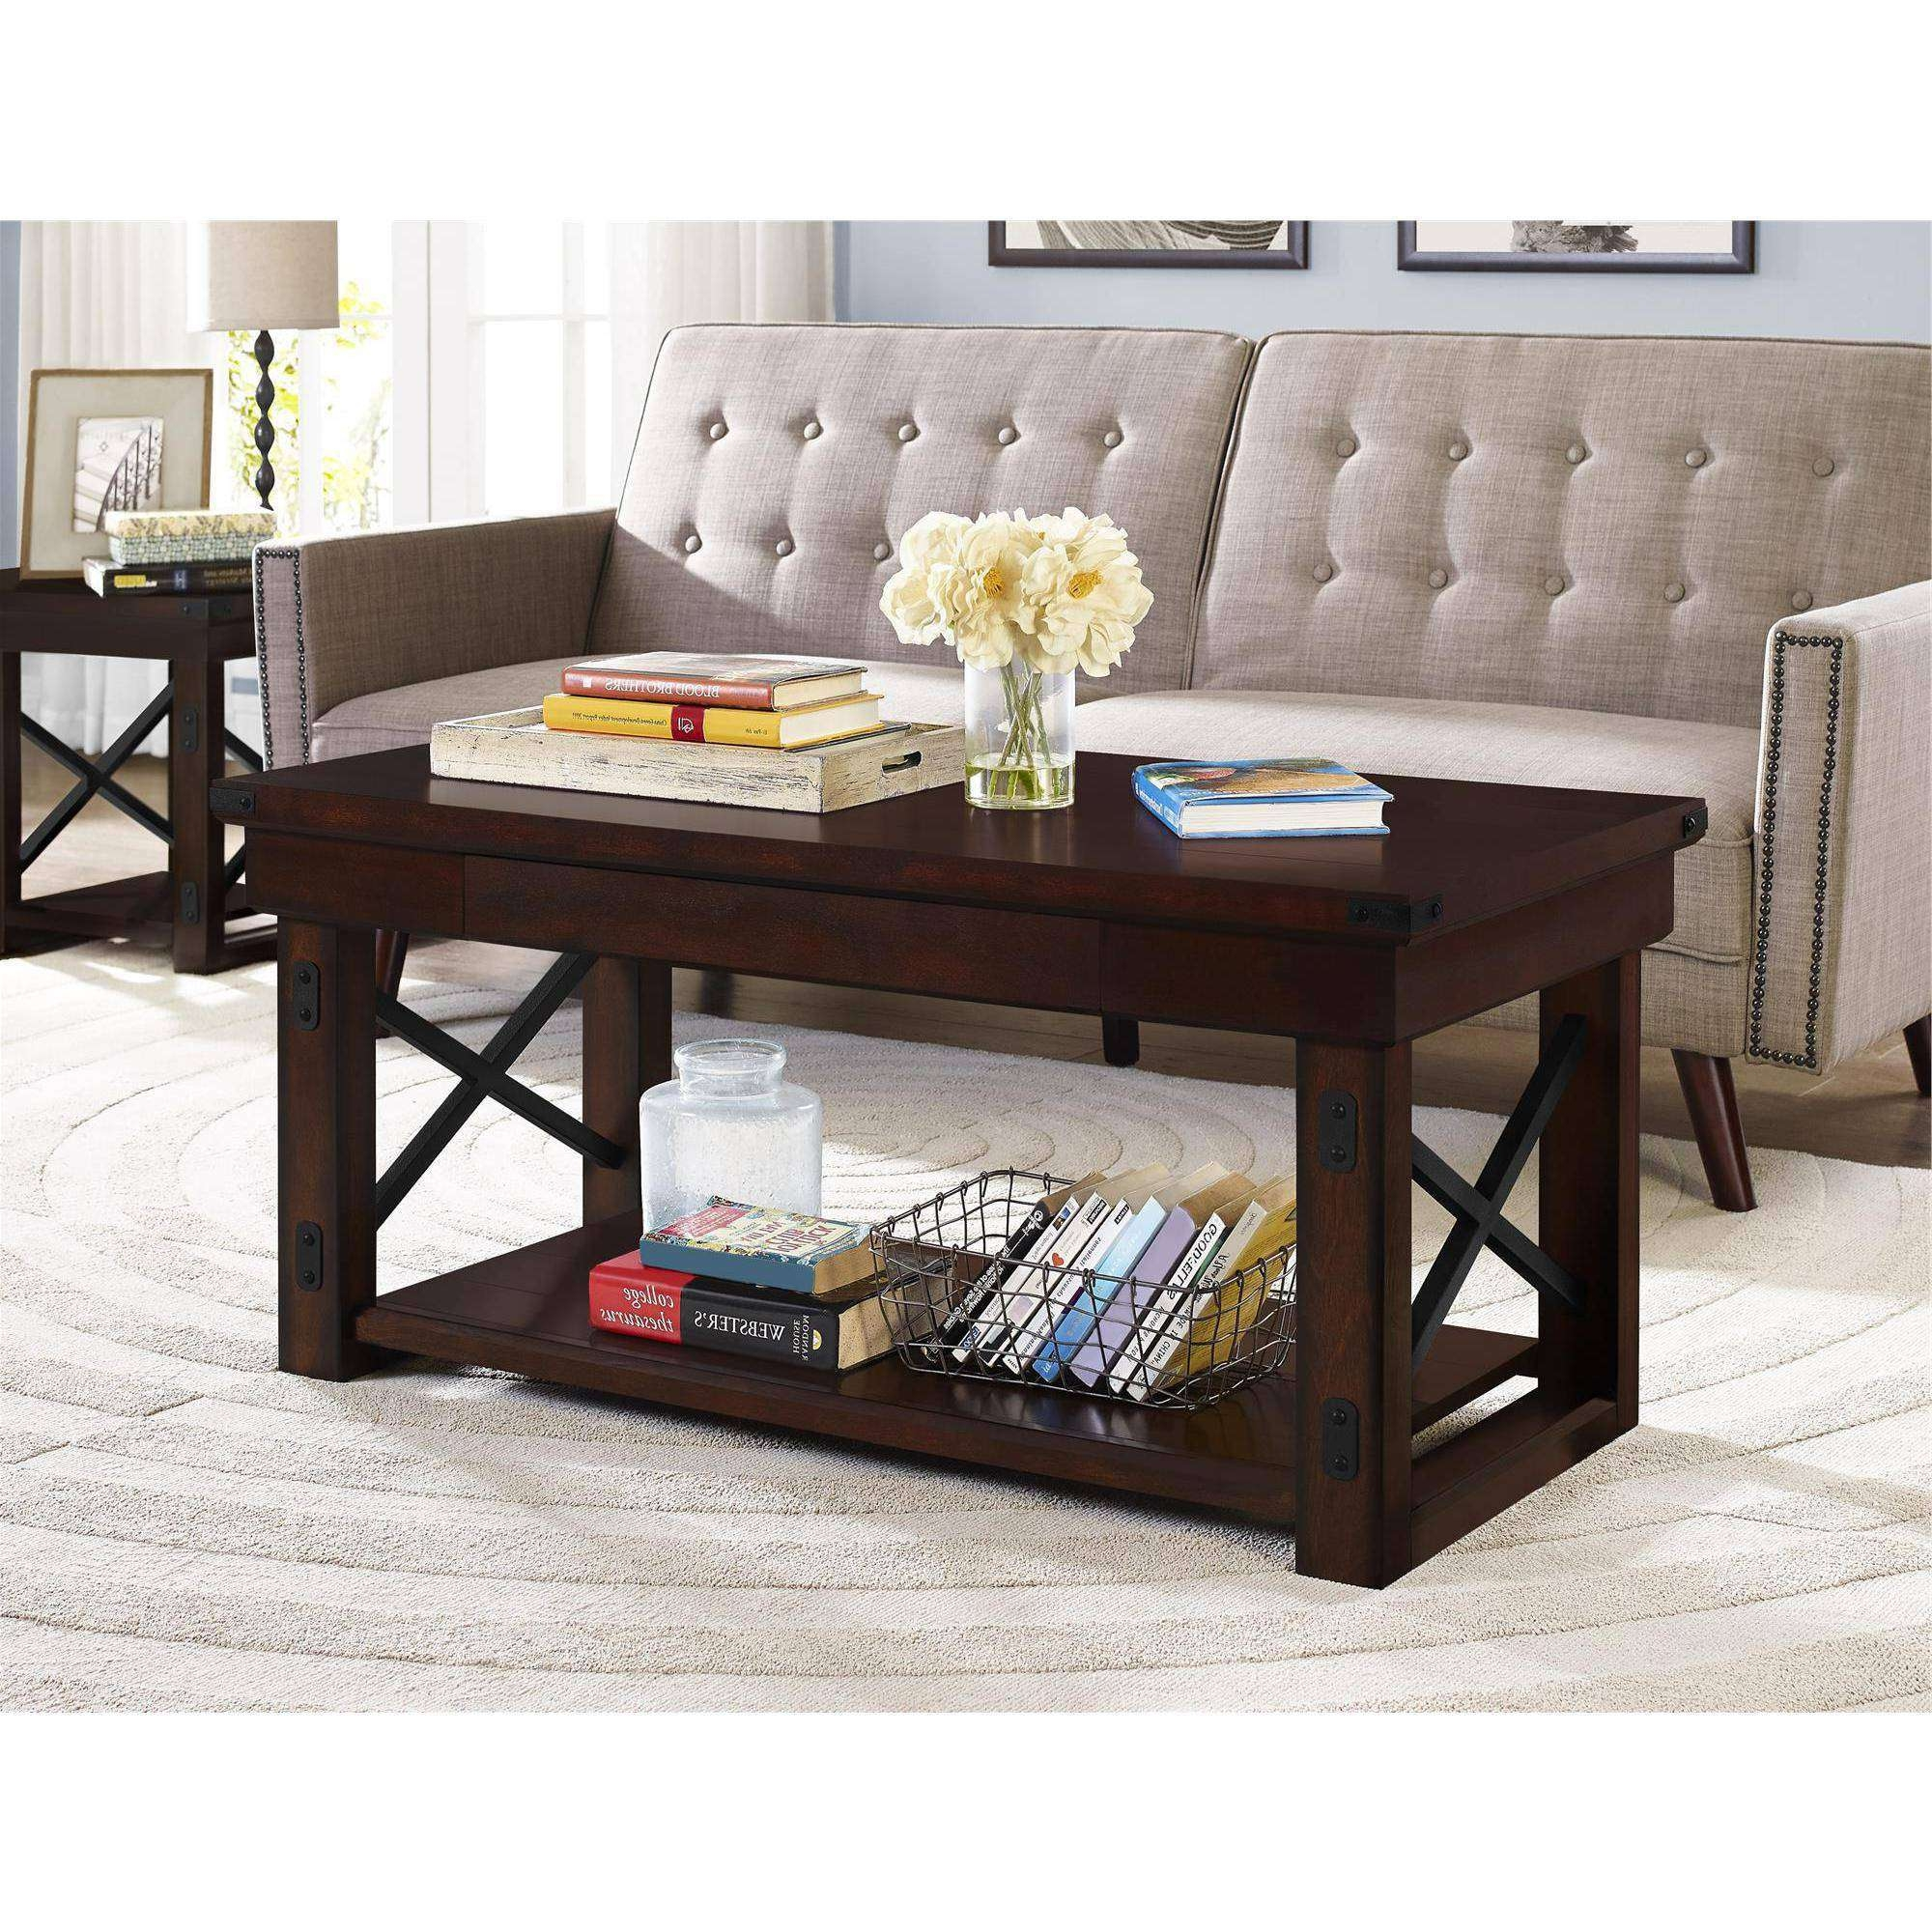 Great Ideas Of Better Homes And Gardens End Table Best Home Plans And Interior Design Ideas By